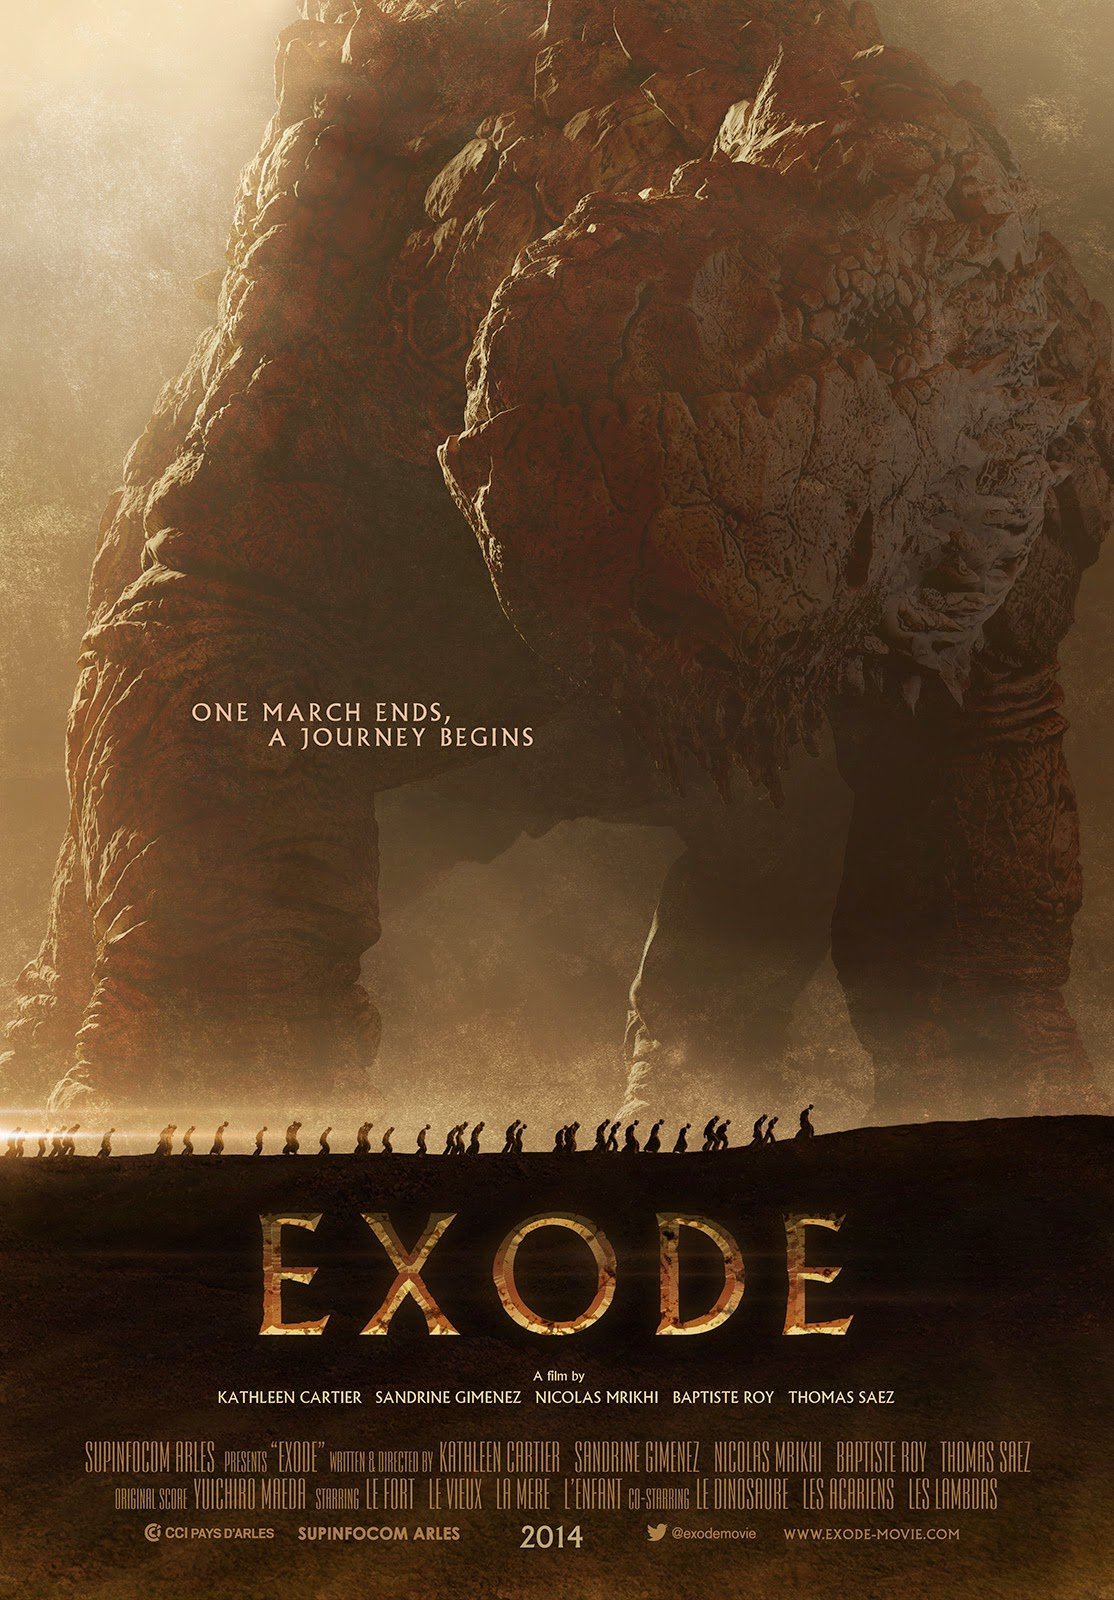 2015-11-07_poster_exode